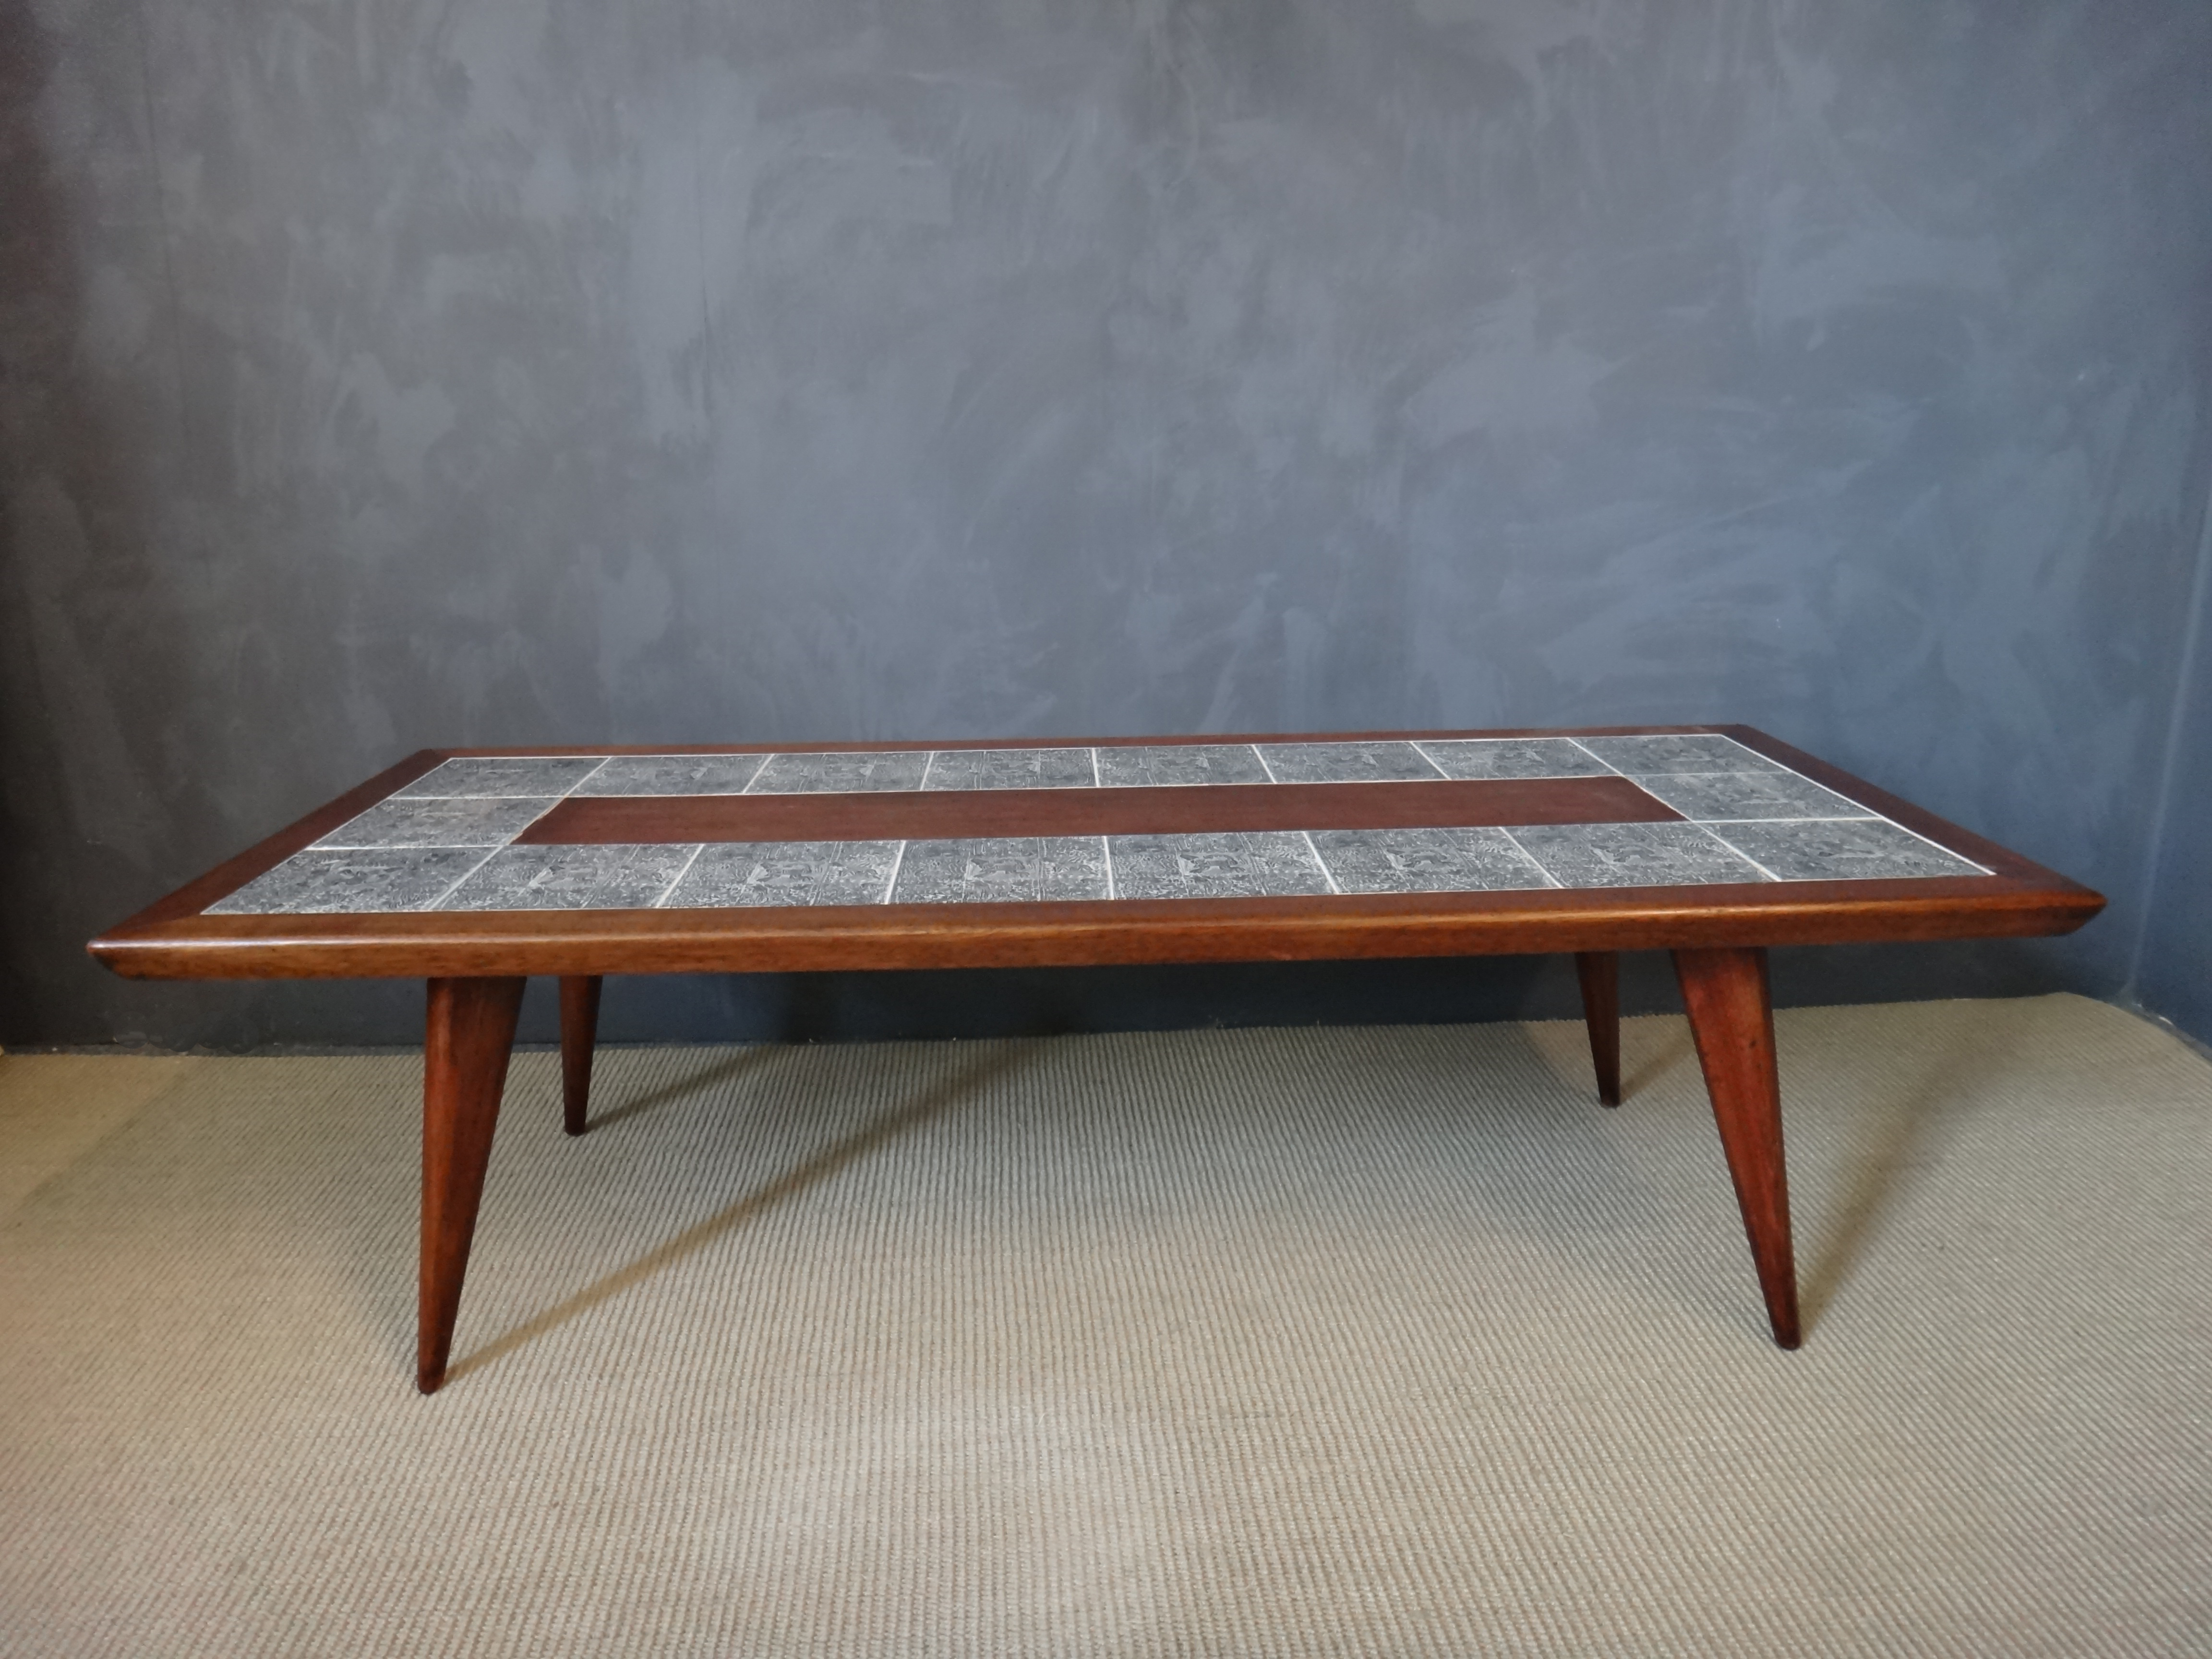 Mahogany Coffee Table with Aztec Pattern Tiles